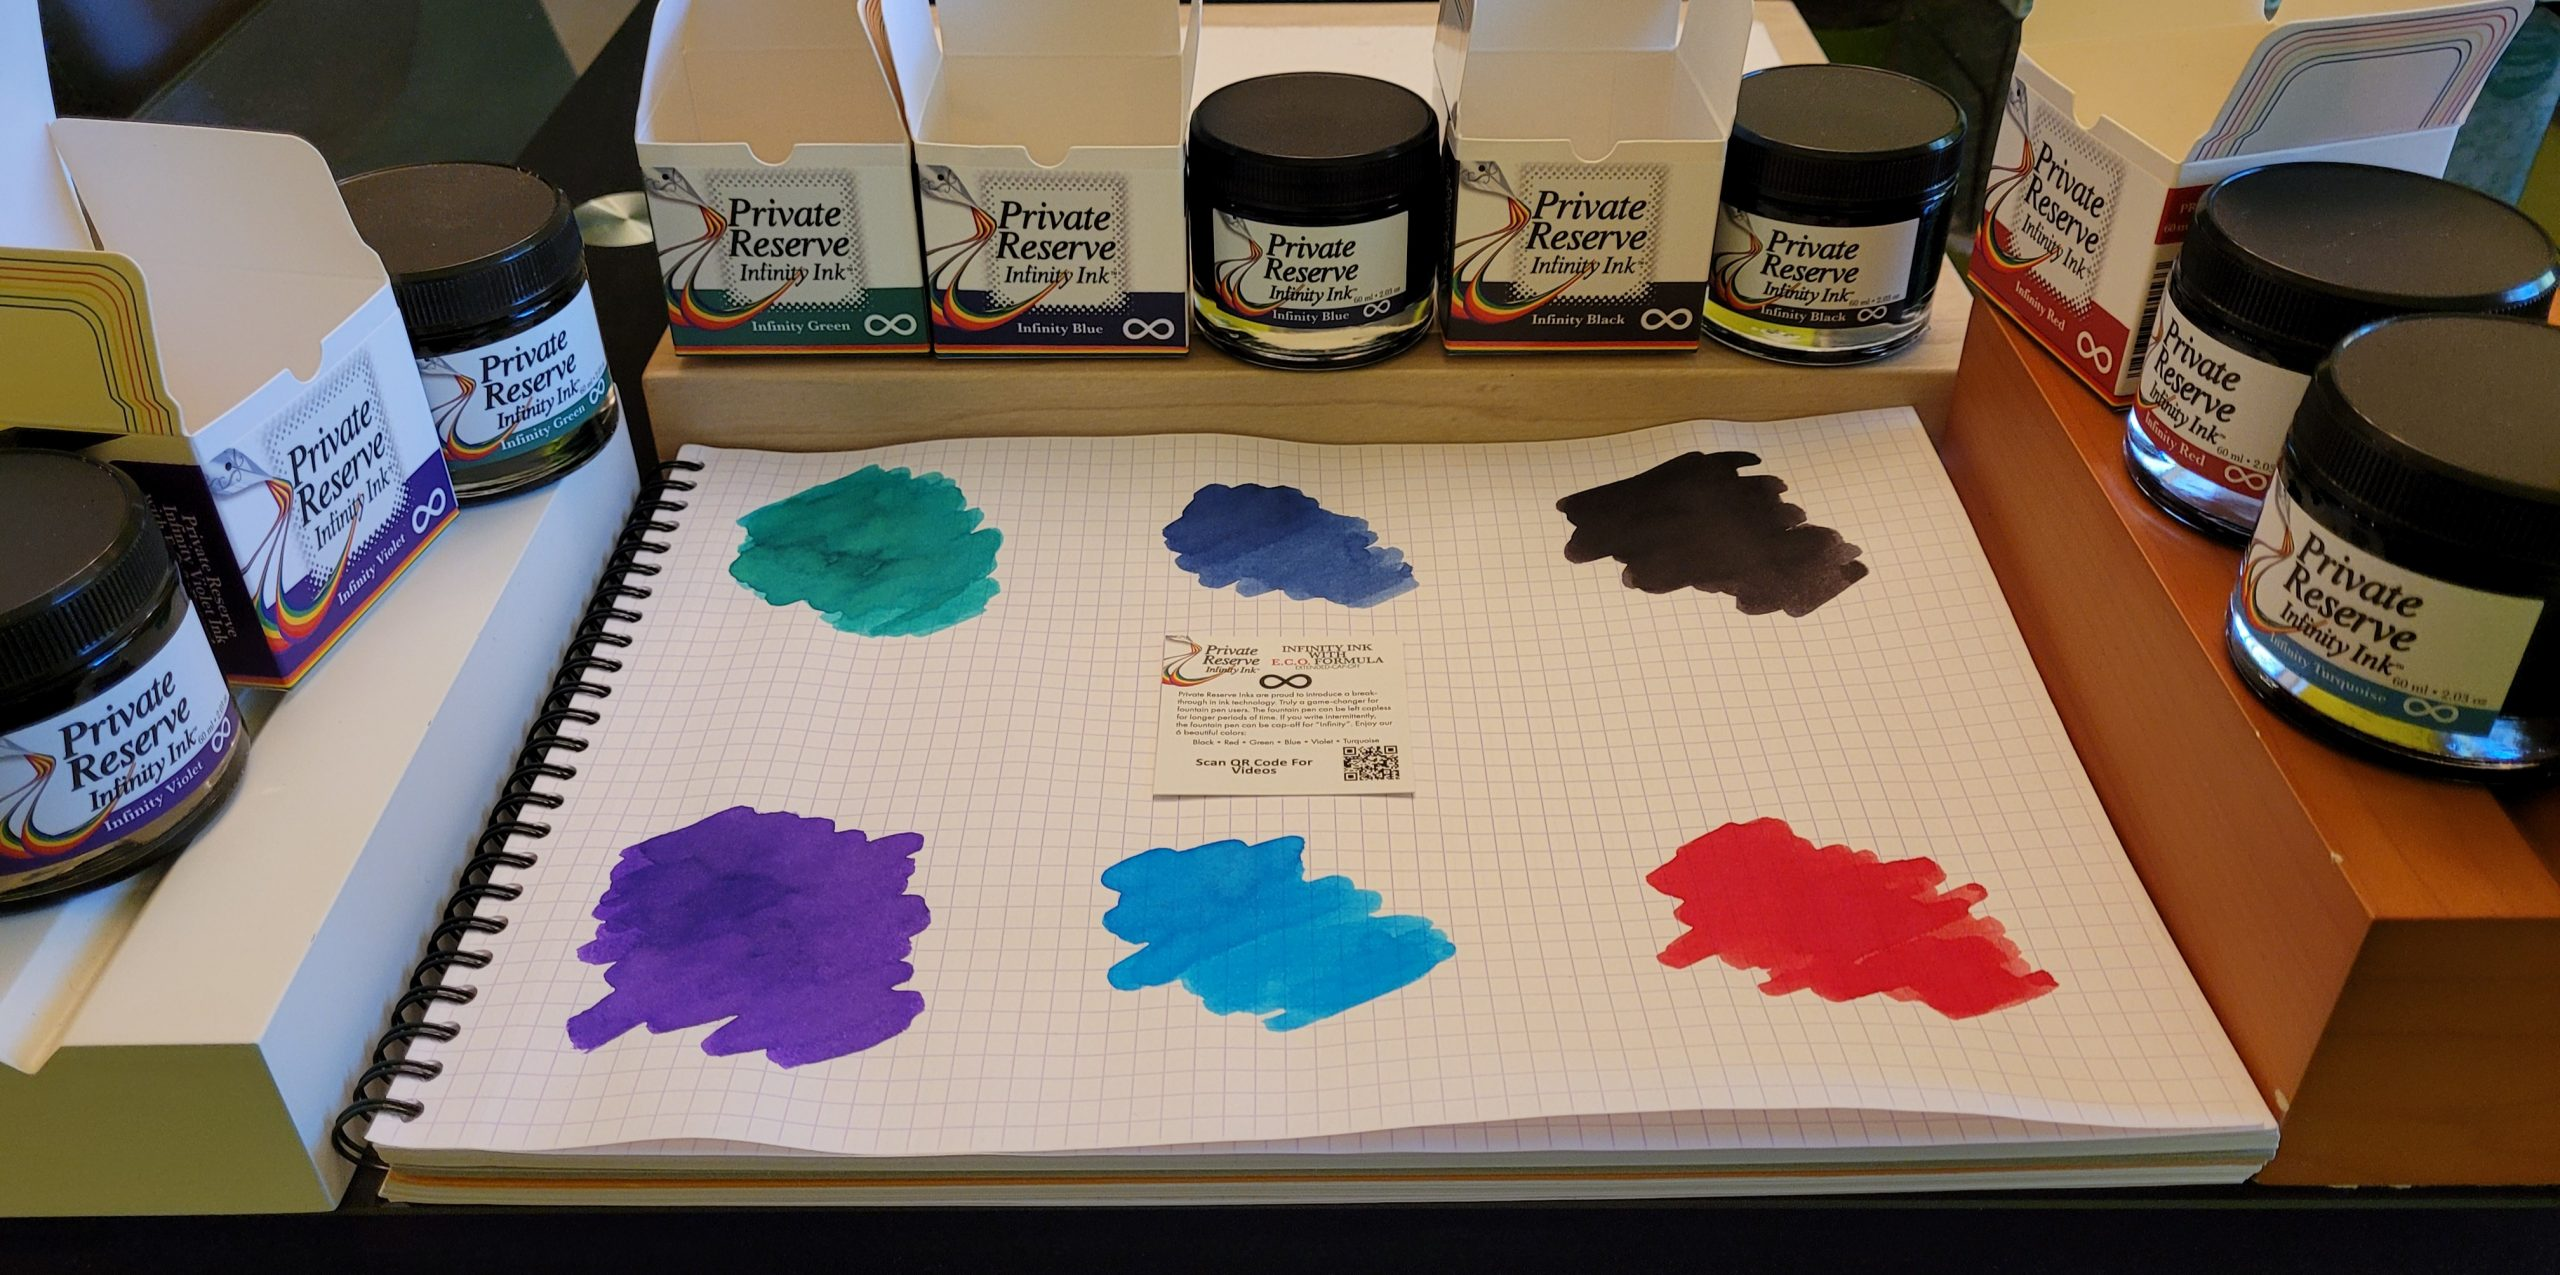 Private Reserve Infinity Ink